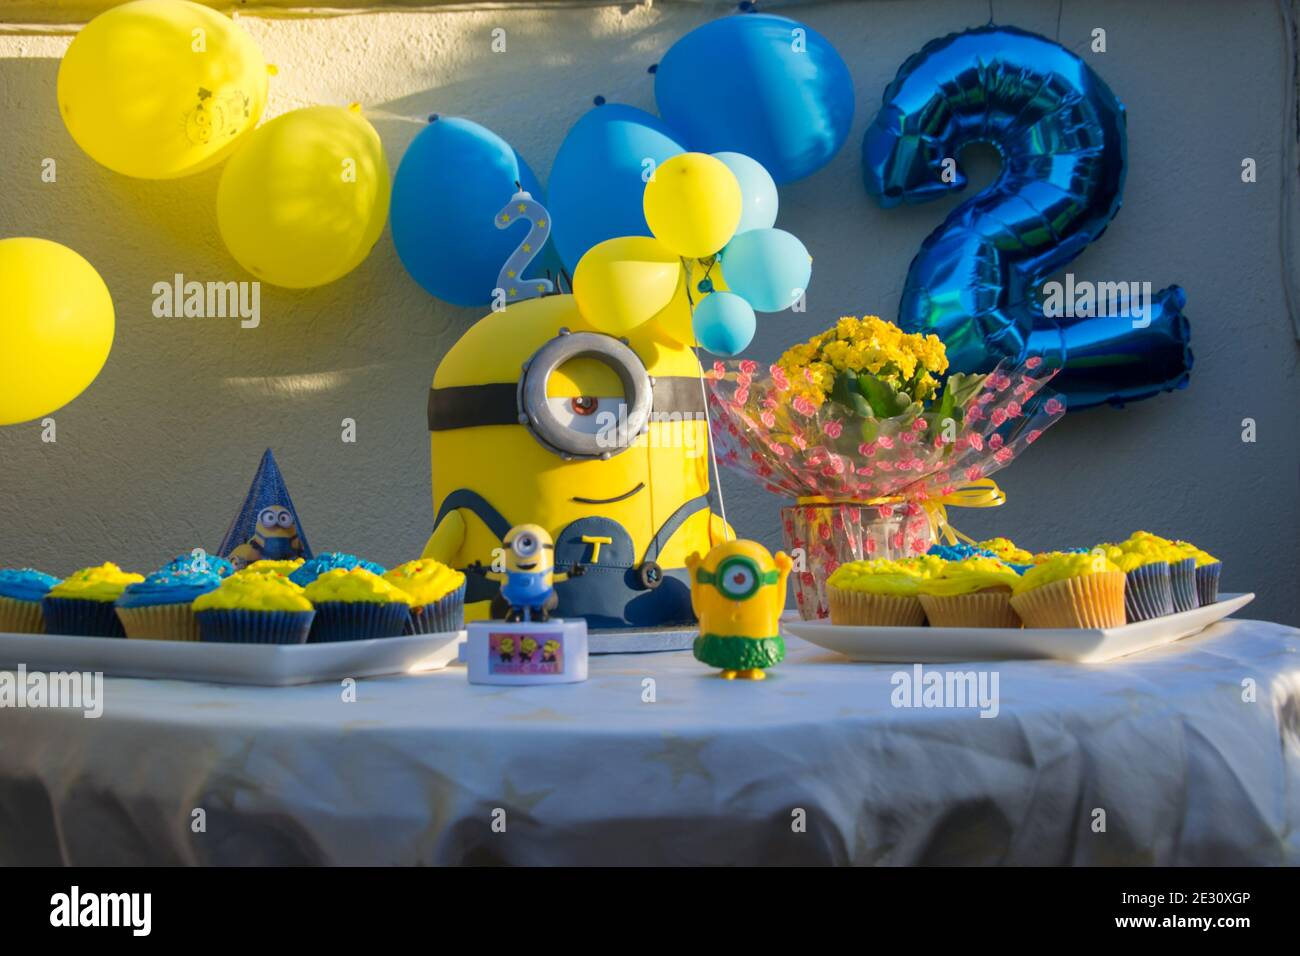 Yellow Minions High Resolution Stock Photography And Images Alamy